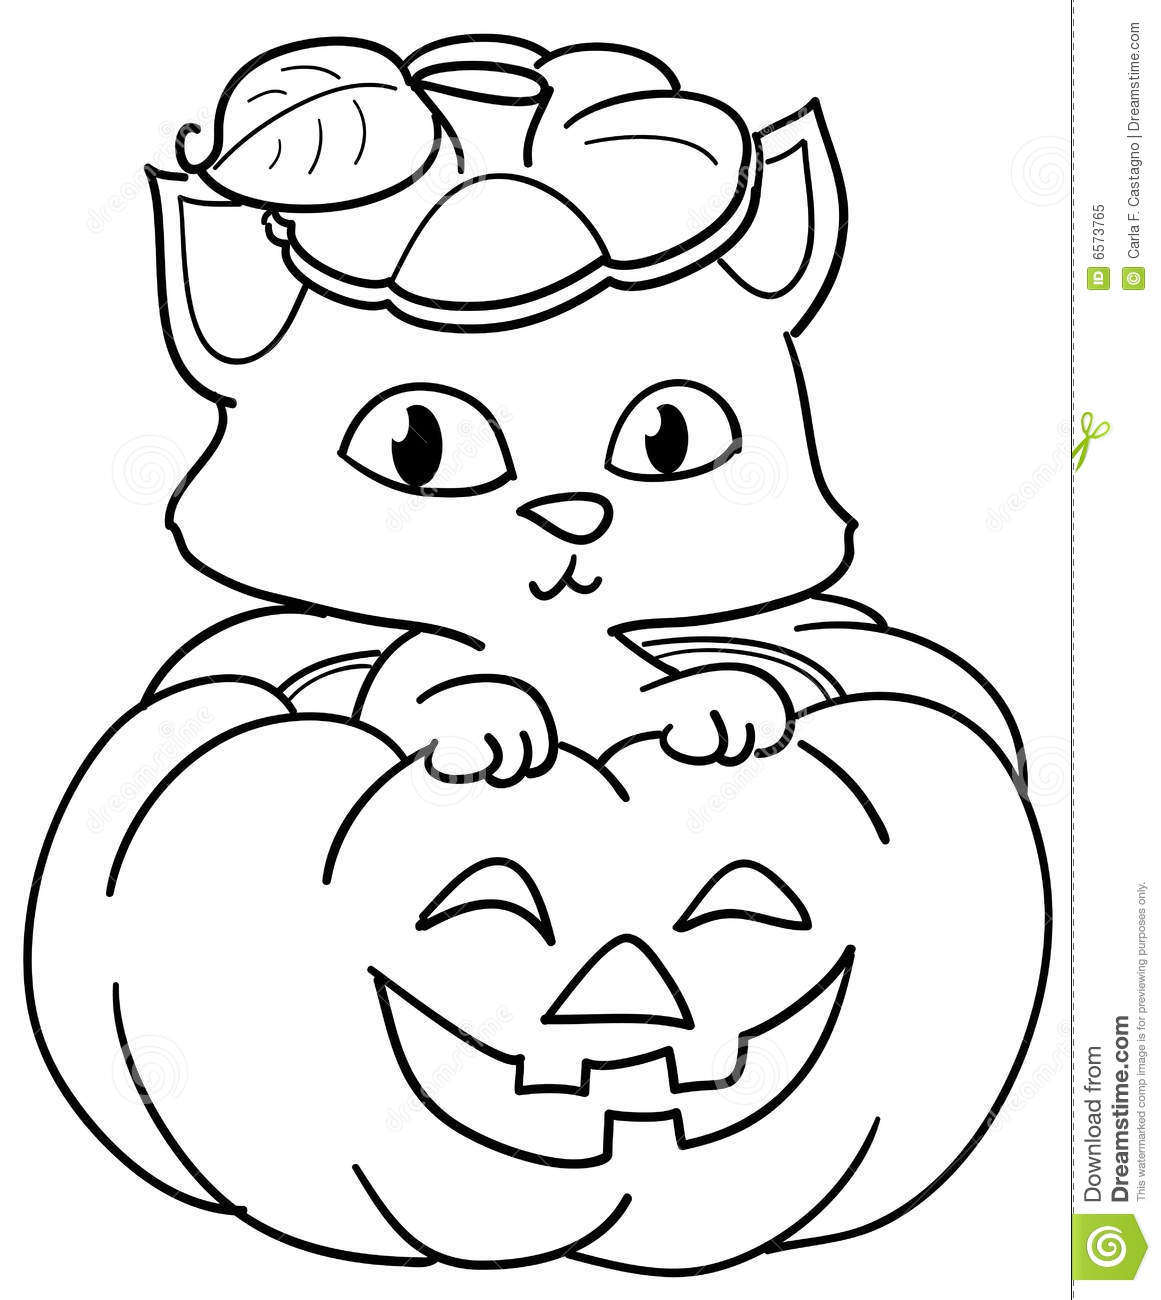 Pumpkin And Cute Cat Coloring Stock Vector - Illustration of pumpkin ...